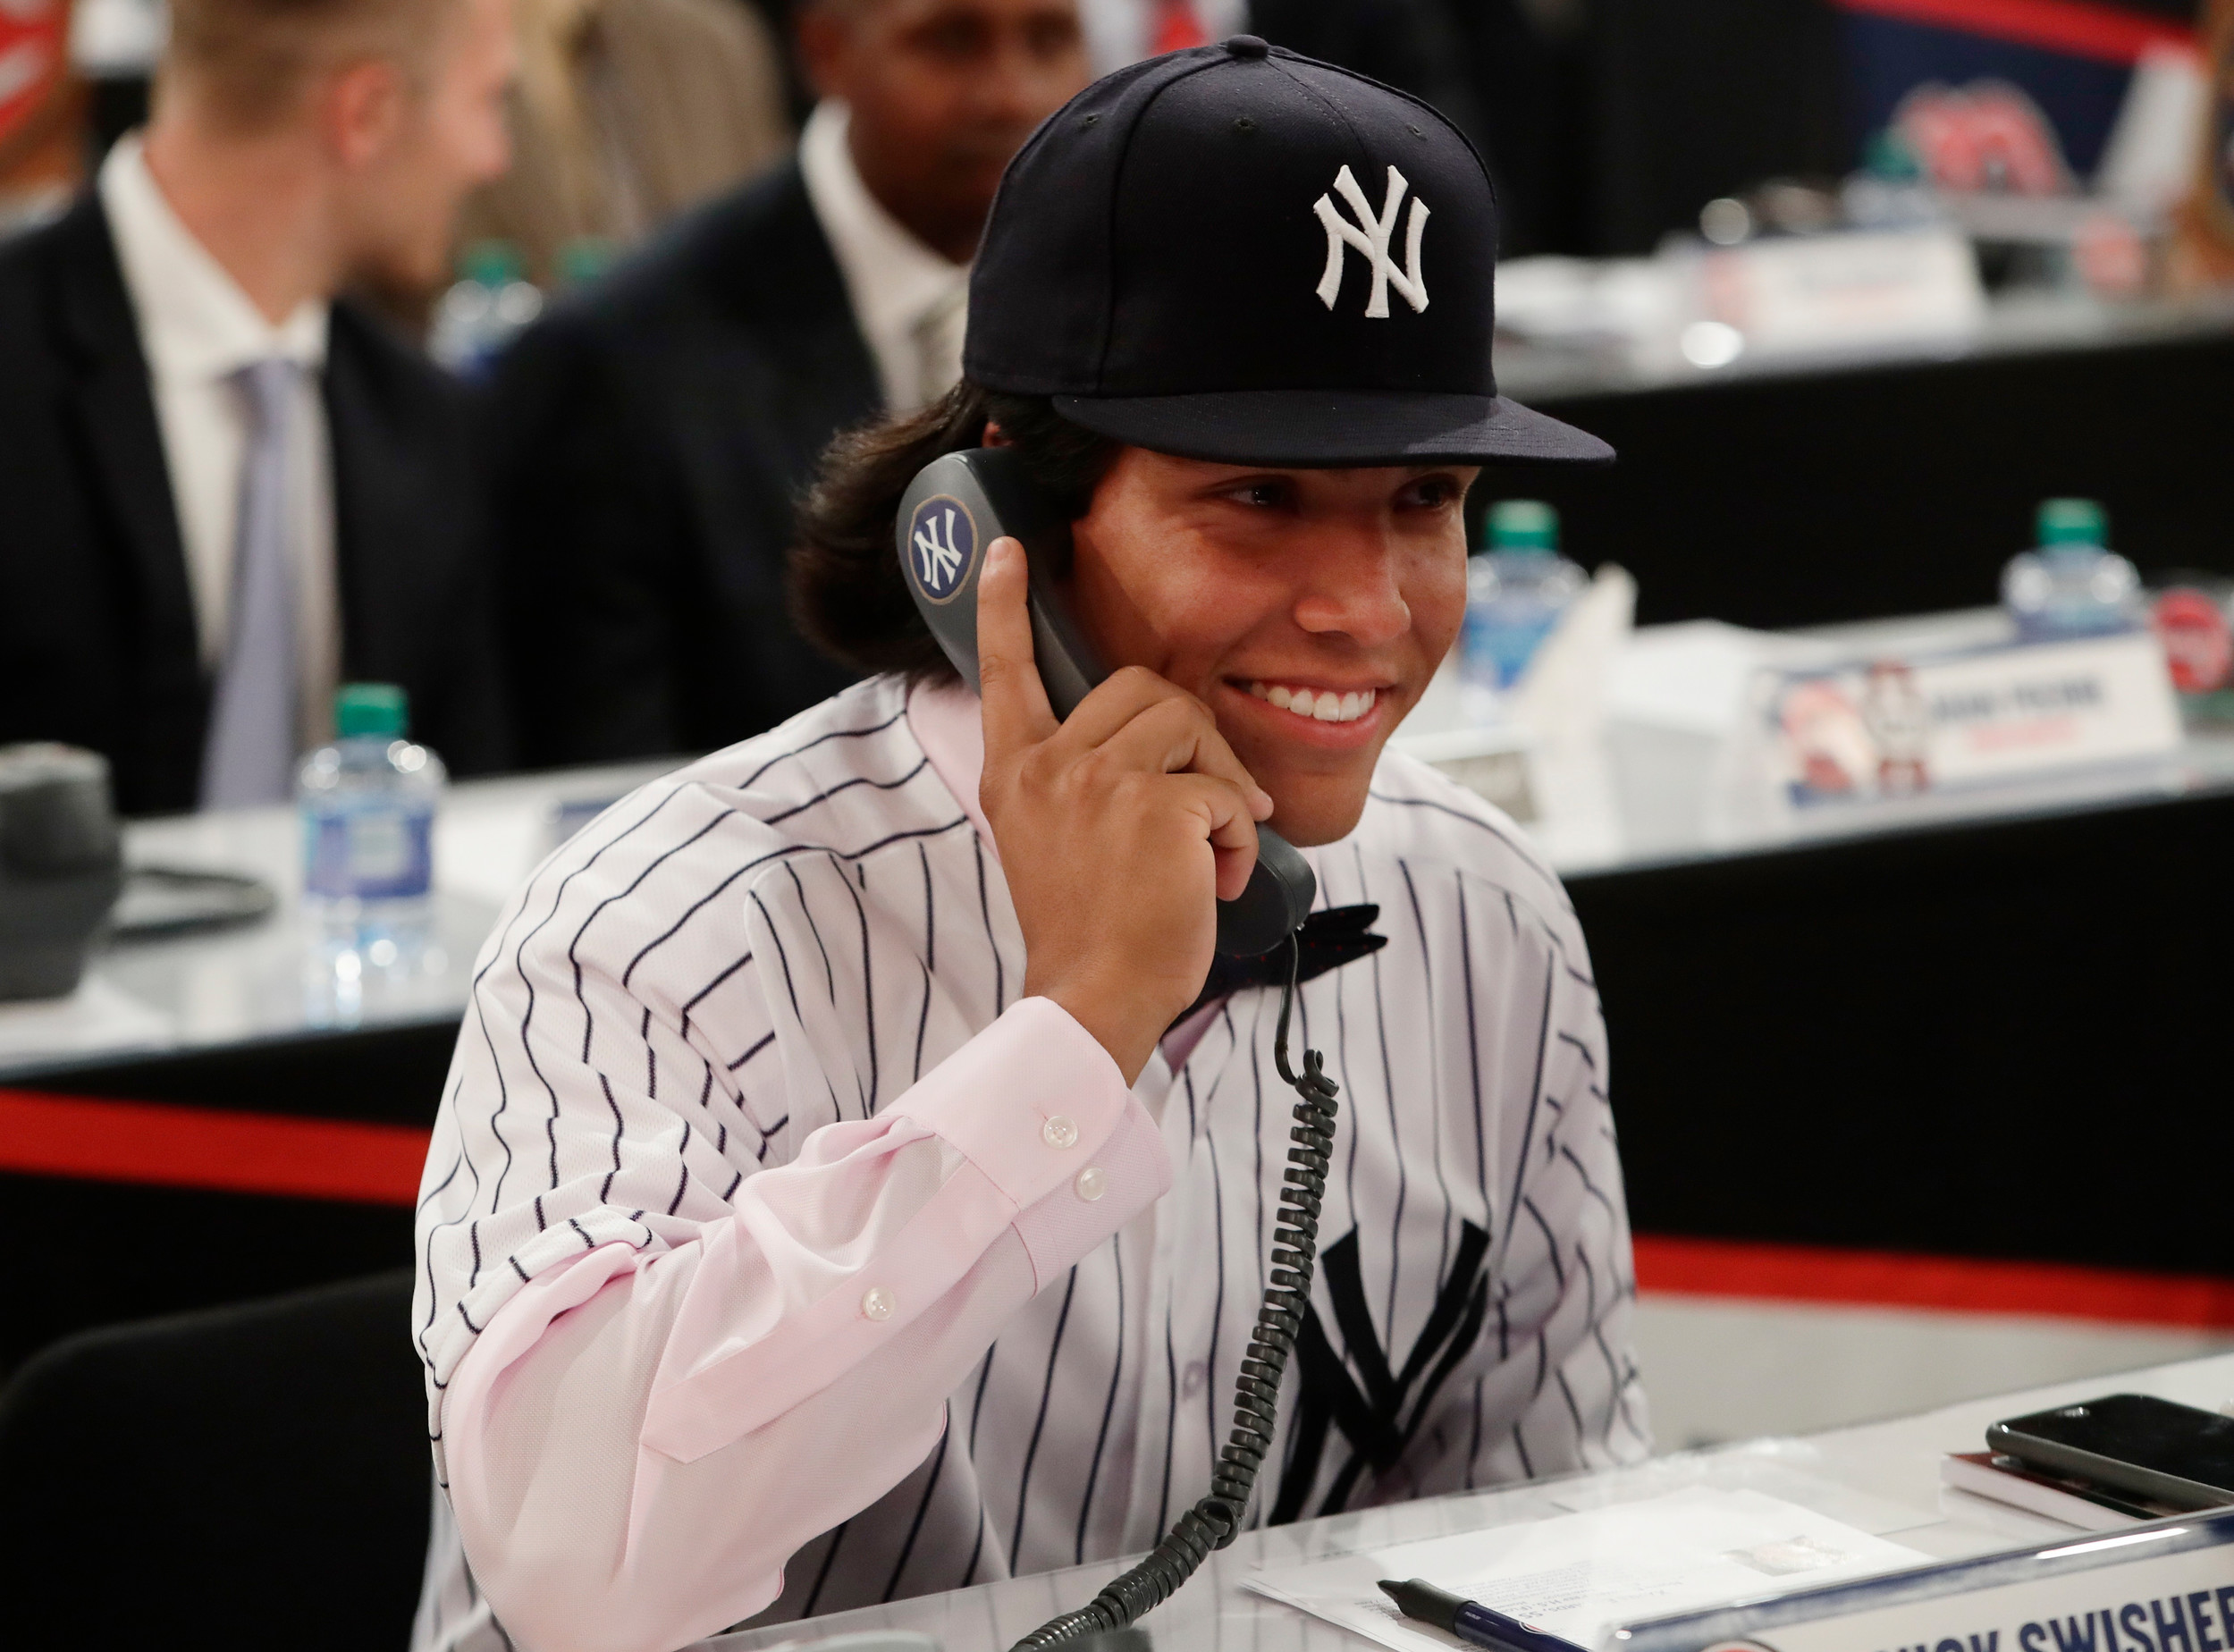 Cartersville's Anthony Seigler speaks on the phone with a member of the New York Yankees after being selected 23rd by the Yankees during the first round of the Major League Baseball draft Monday in Secaucus, New Jersey.